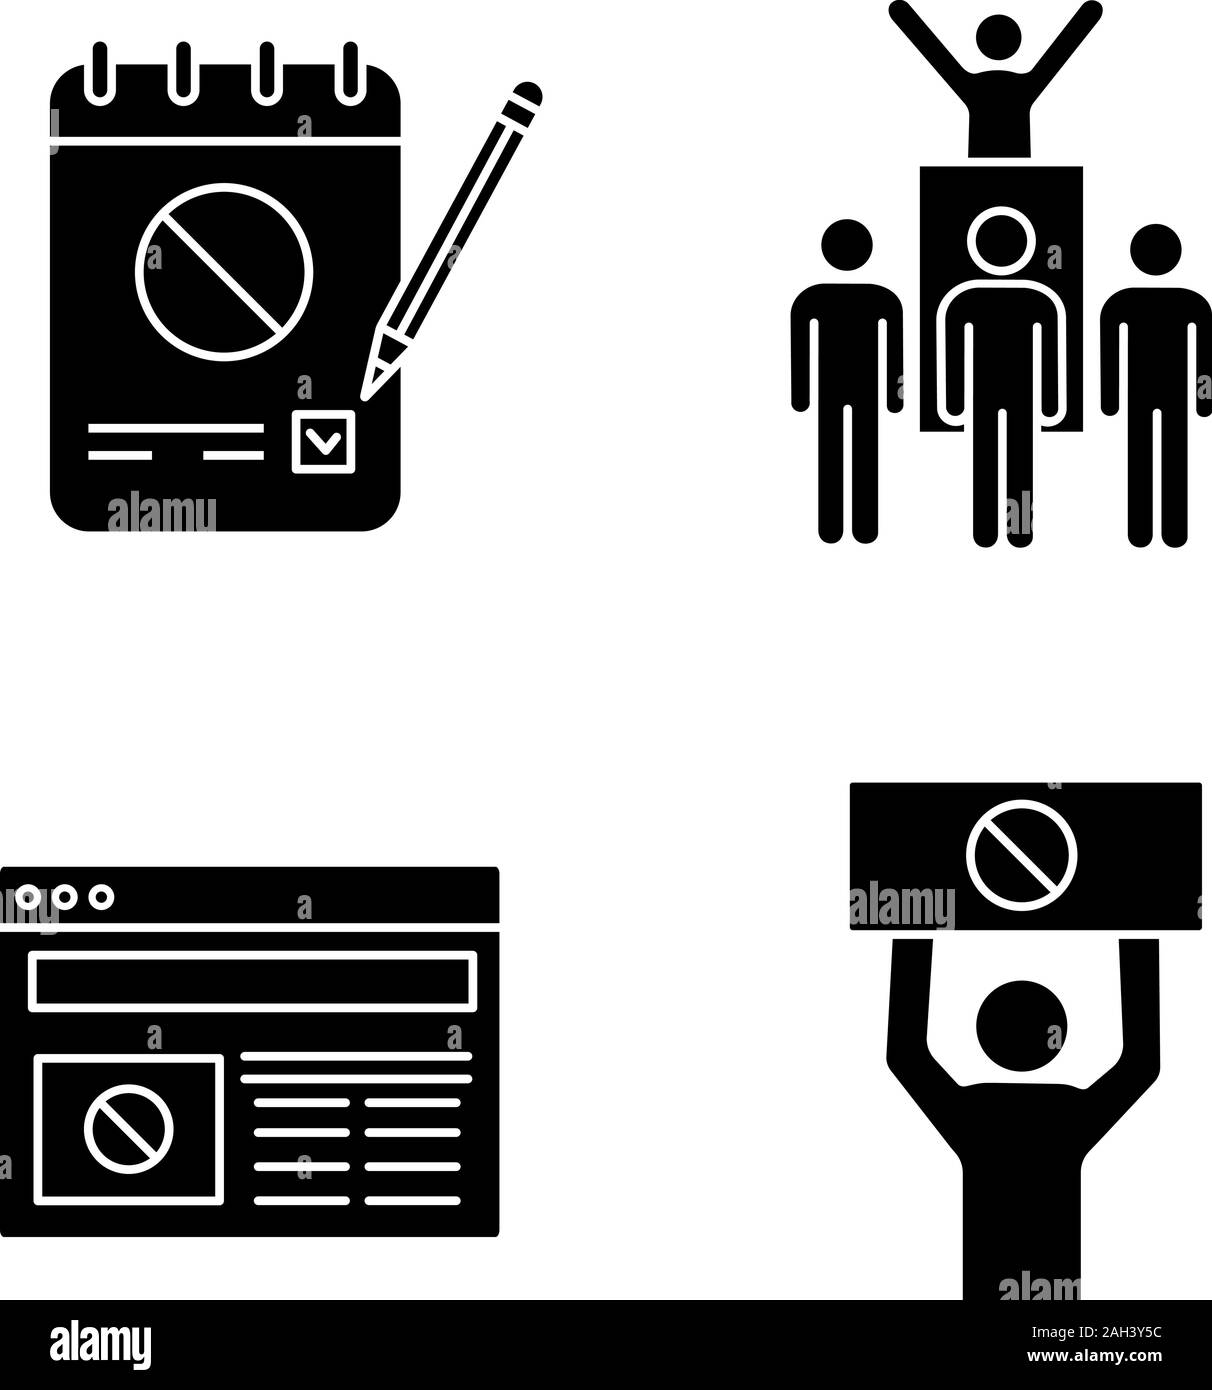 Protest action glyph icons set. Petition, protest leader, social movement, political internet news. Silhouette symbols. Vector isolated illustration Stock Vector